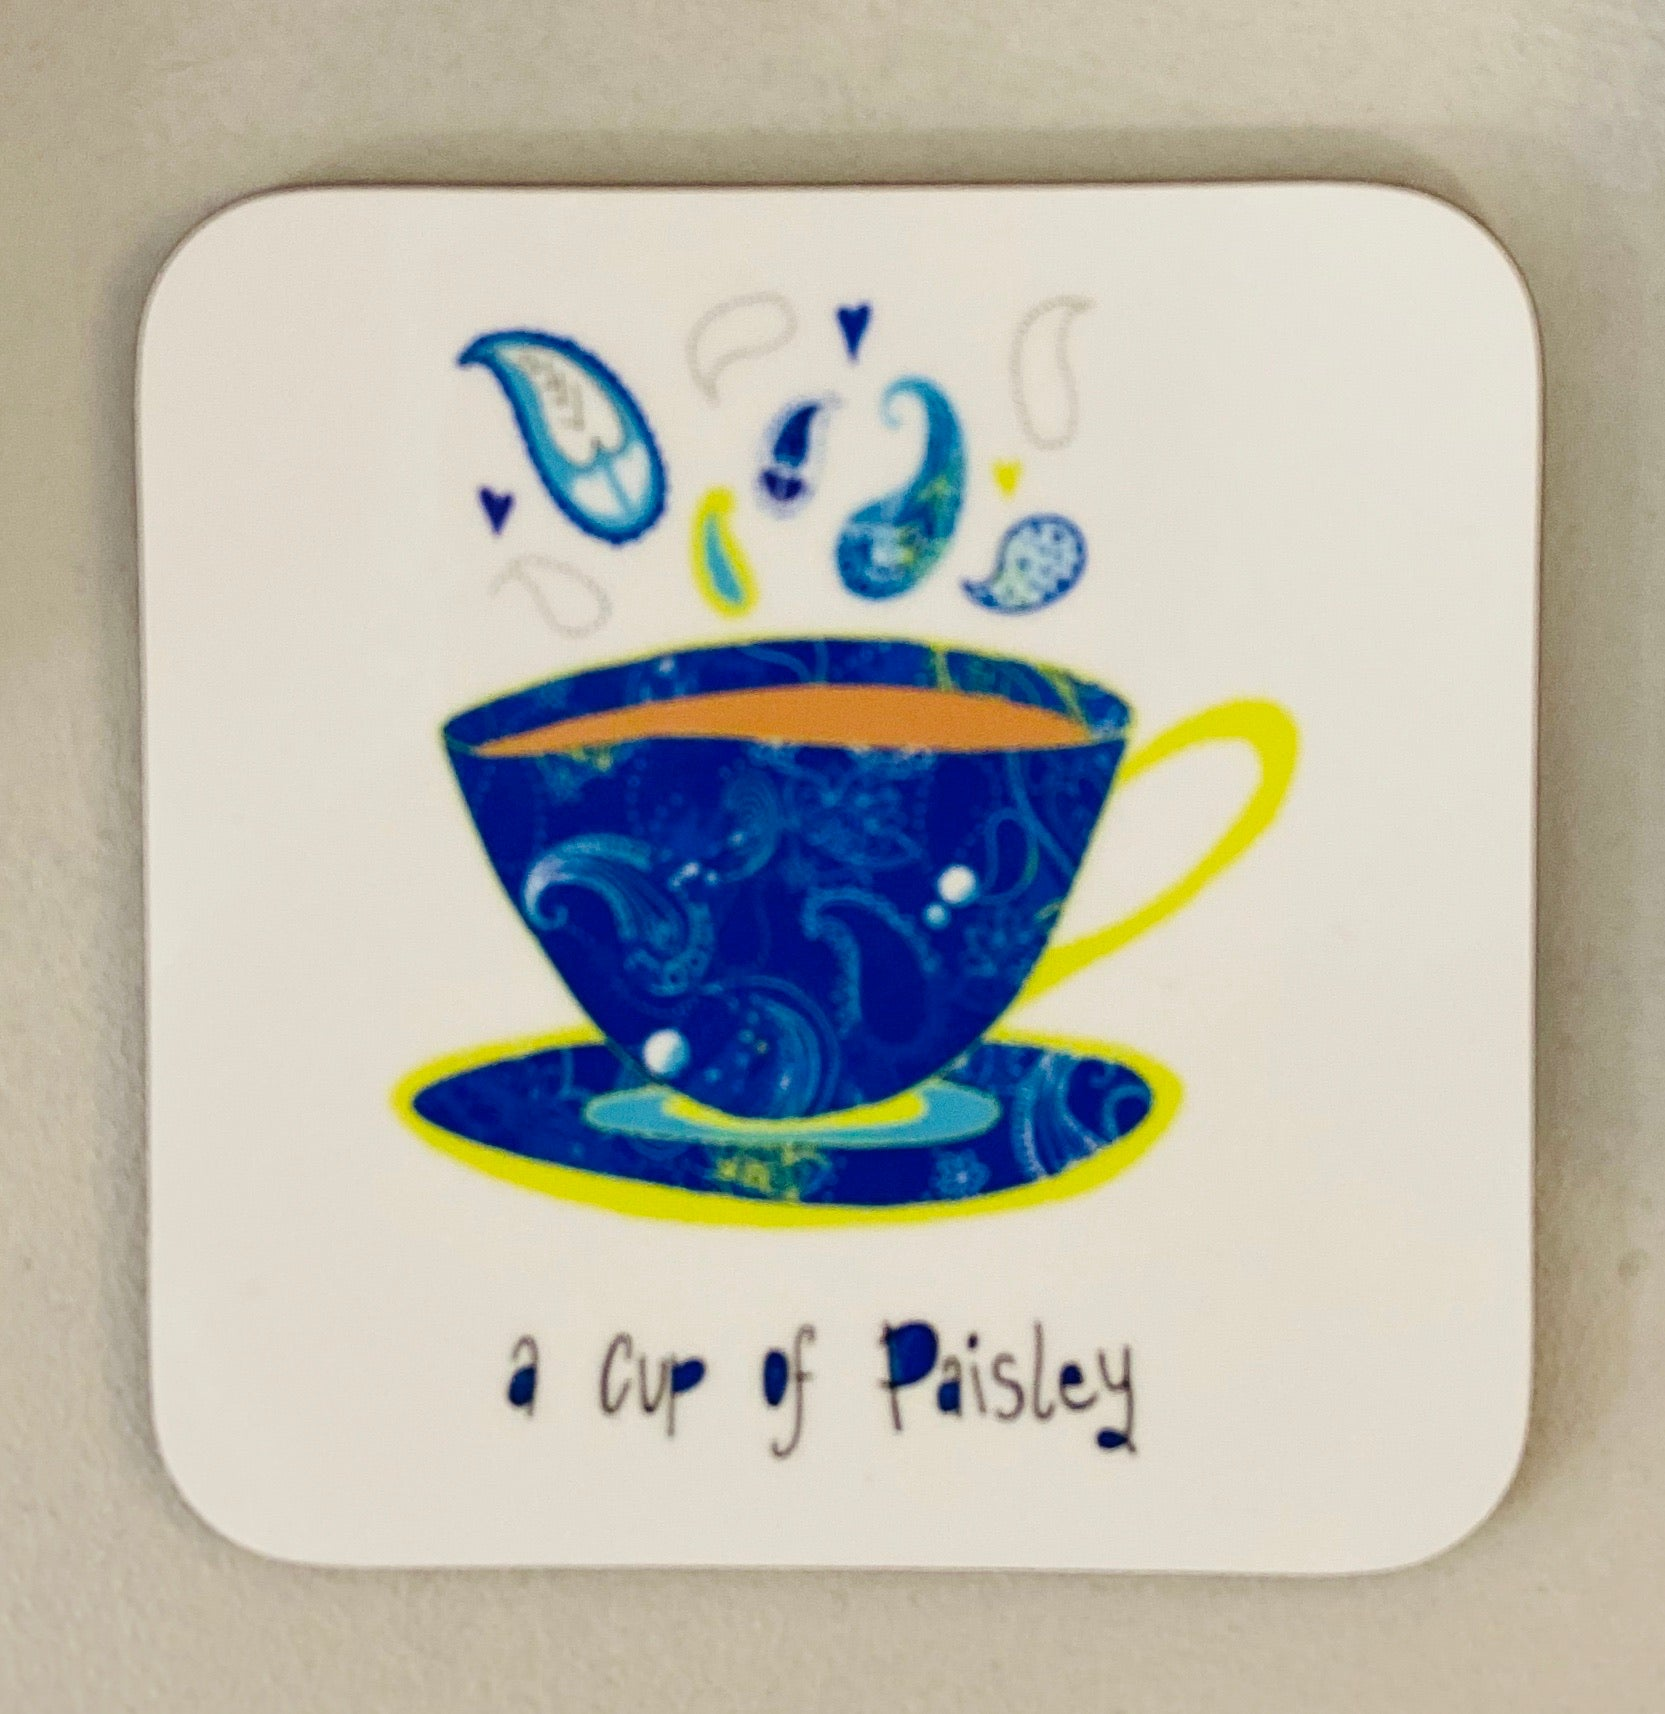 A cup of Paisley Coaster-Blue